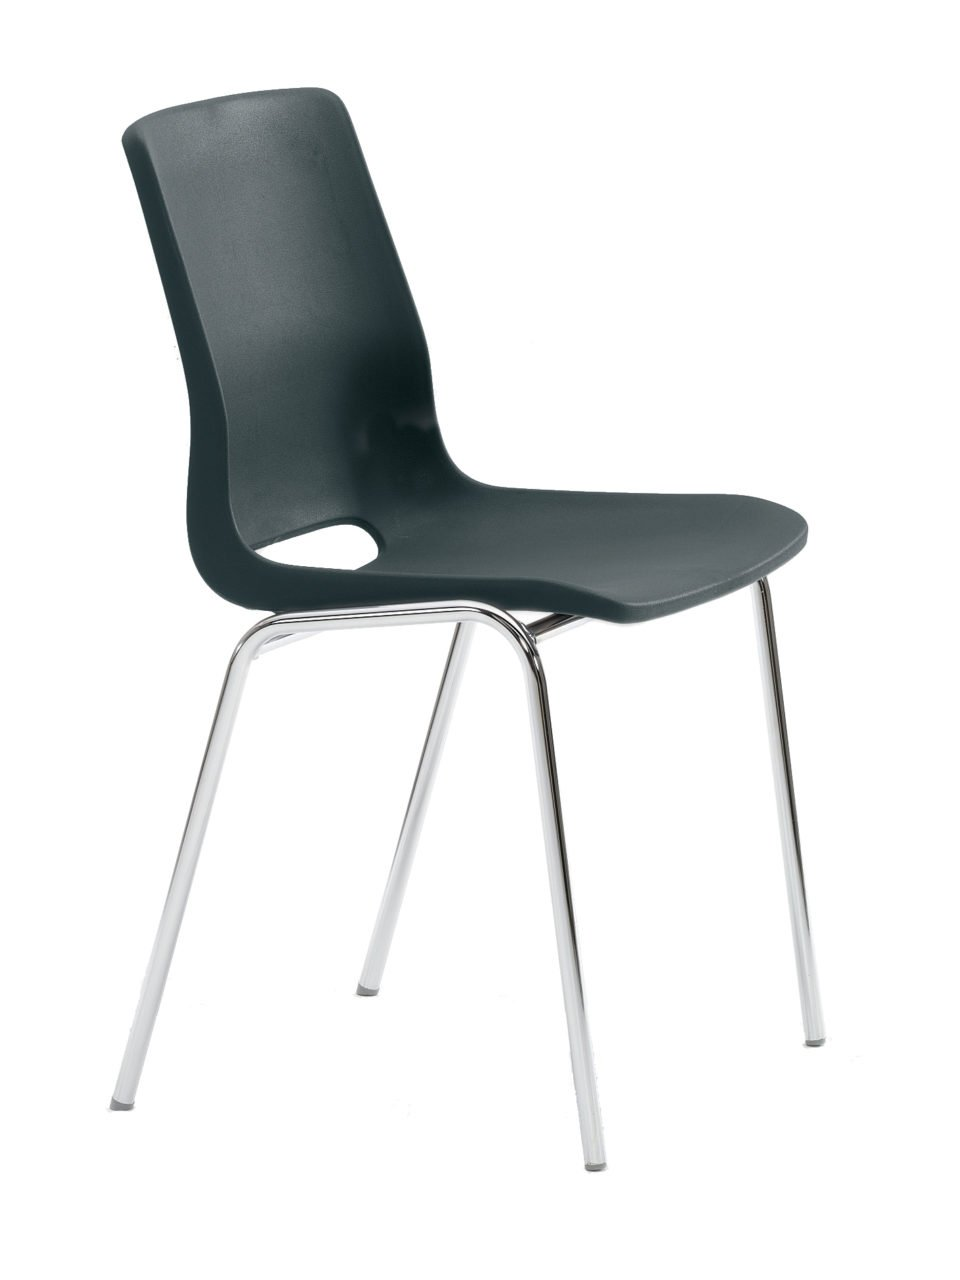 foot rests for chairs white rocker chair rbm ana - ergocentric